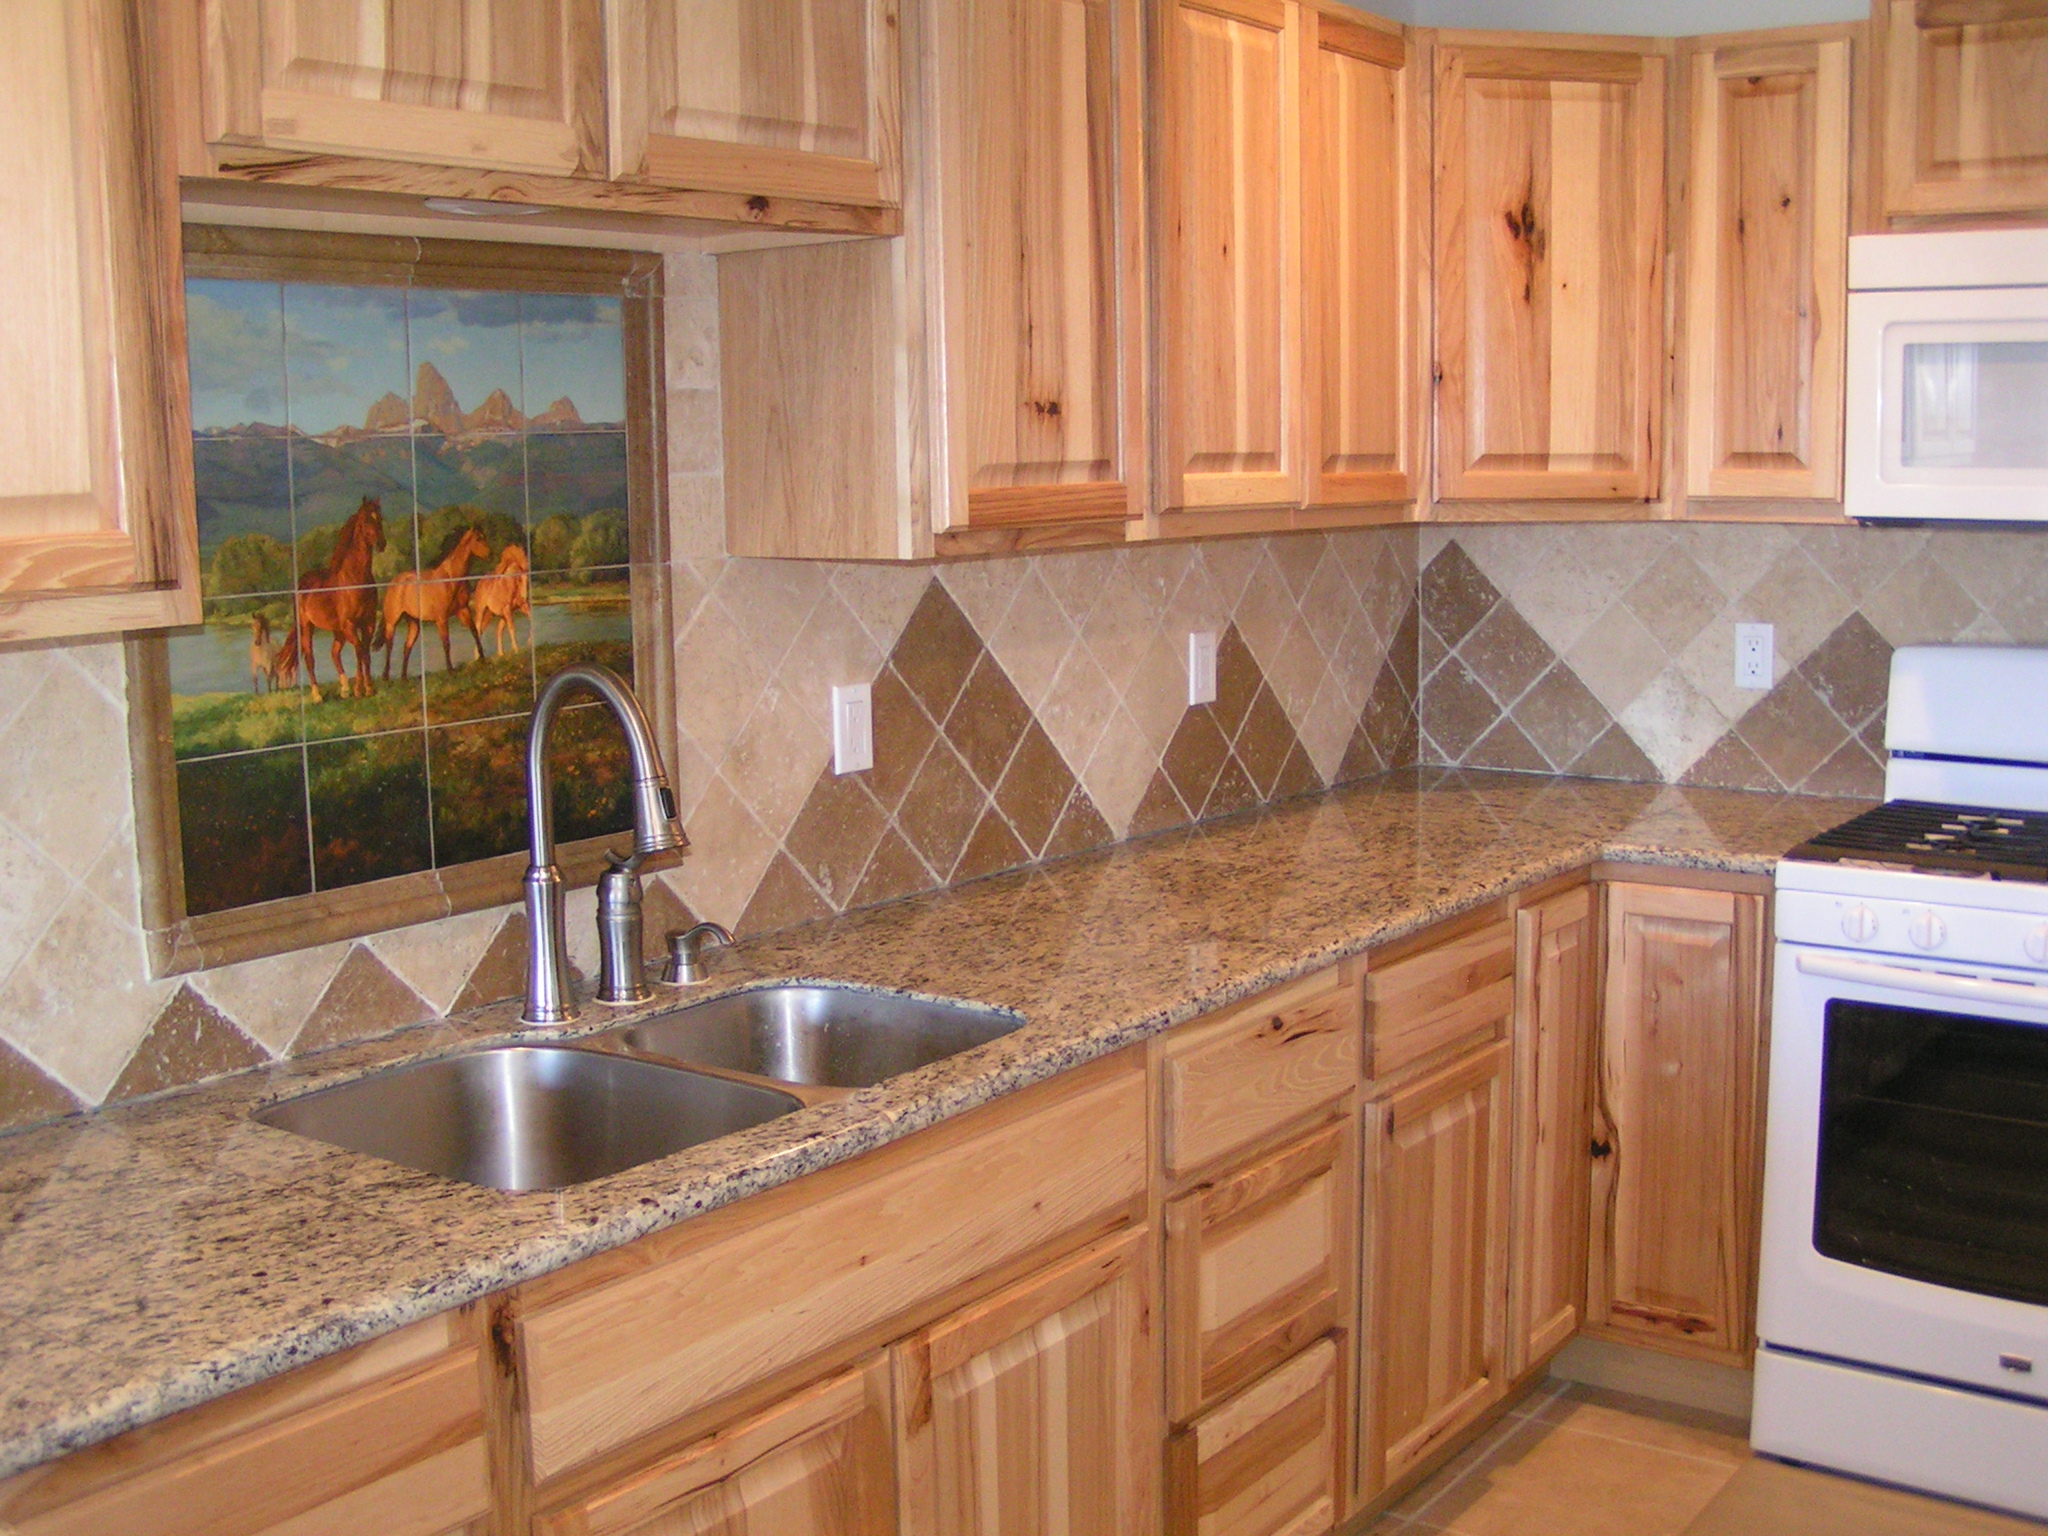 Lazy Granite Tile For Kitchen Countertops Lazy Granite Denver Shower Doors Denver Granite Countertops